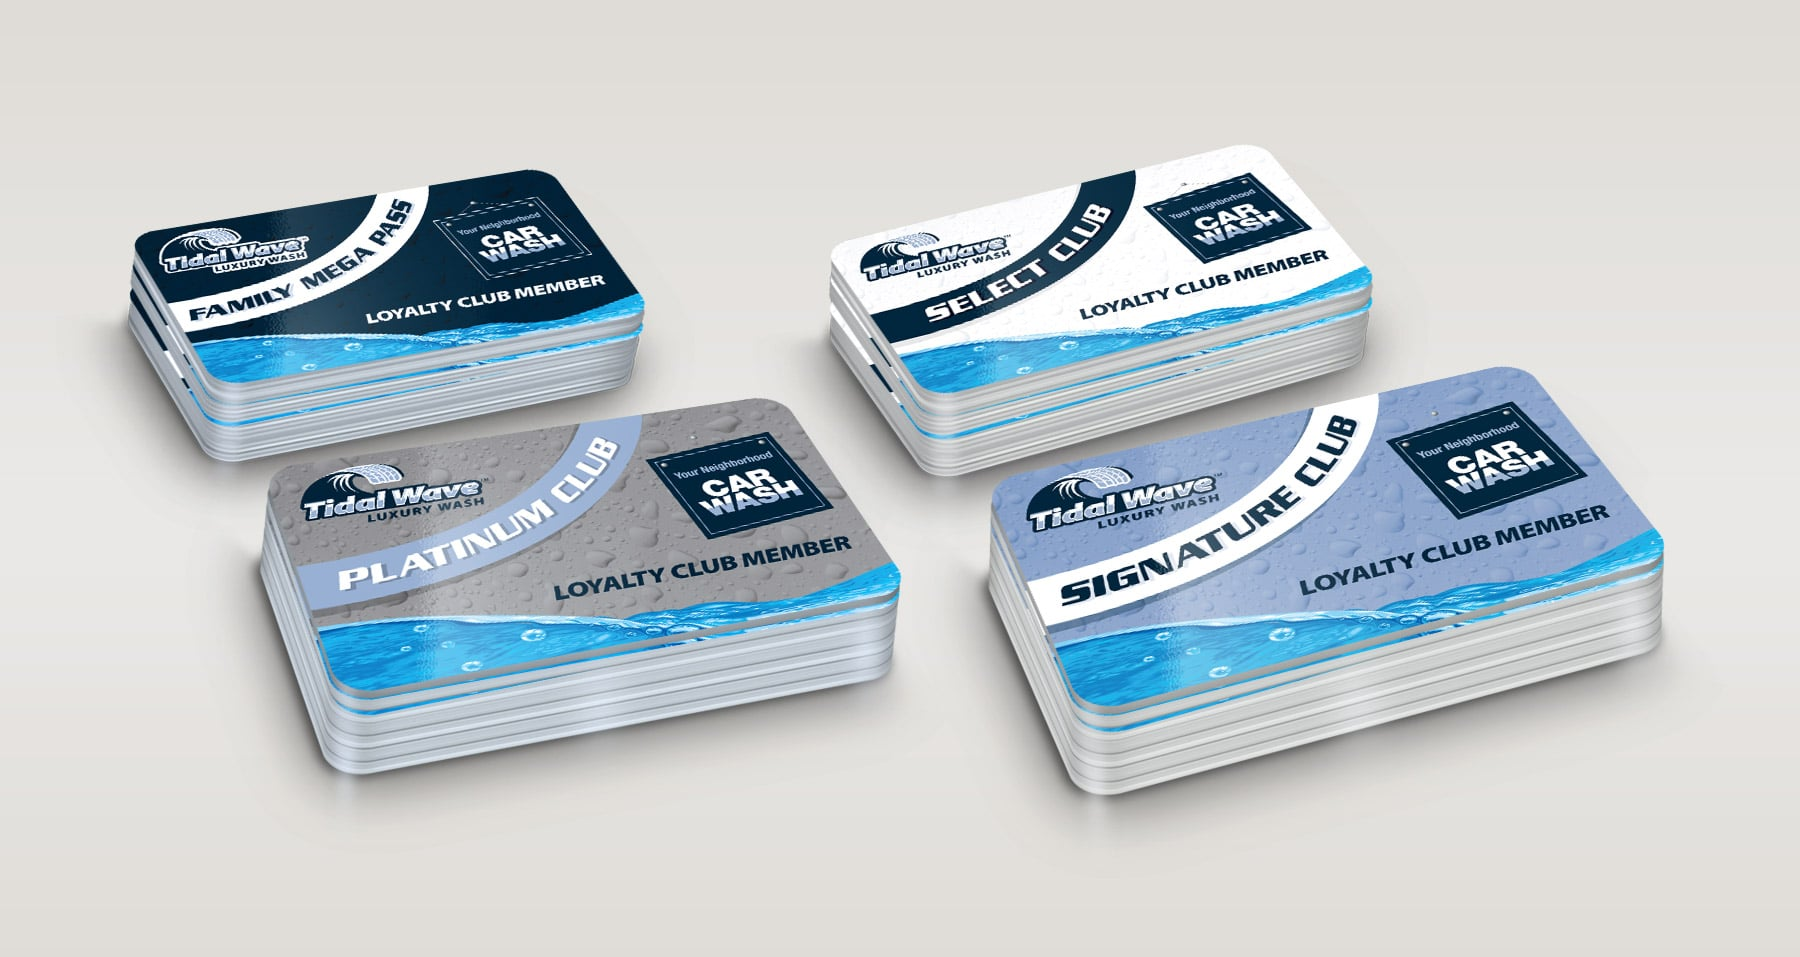 Tidal Wave Loyalty Card designs